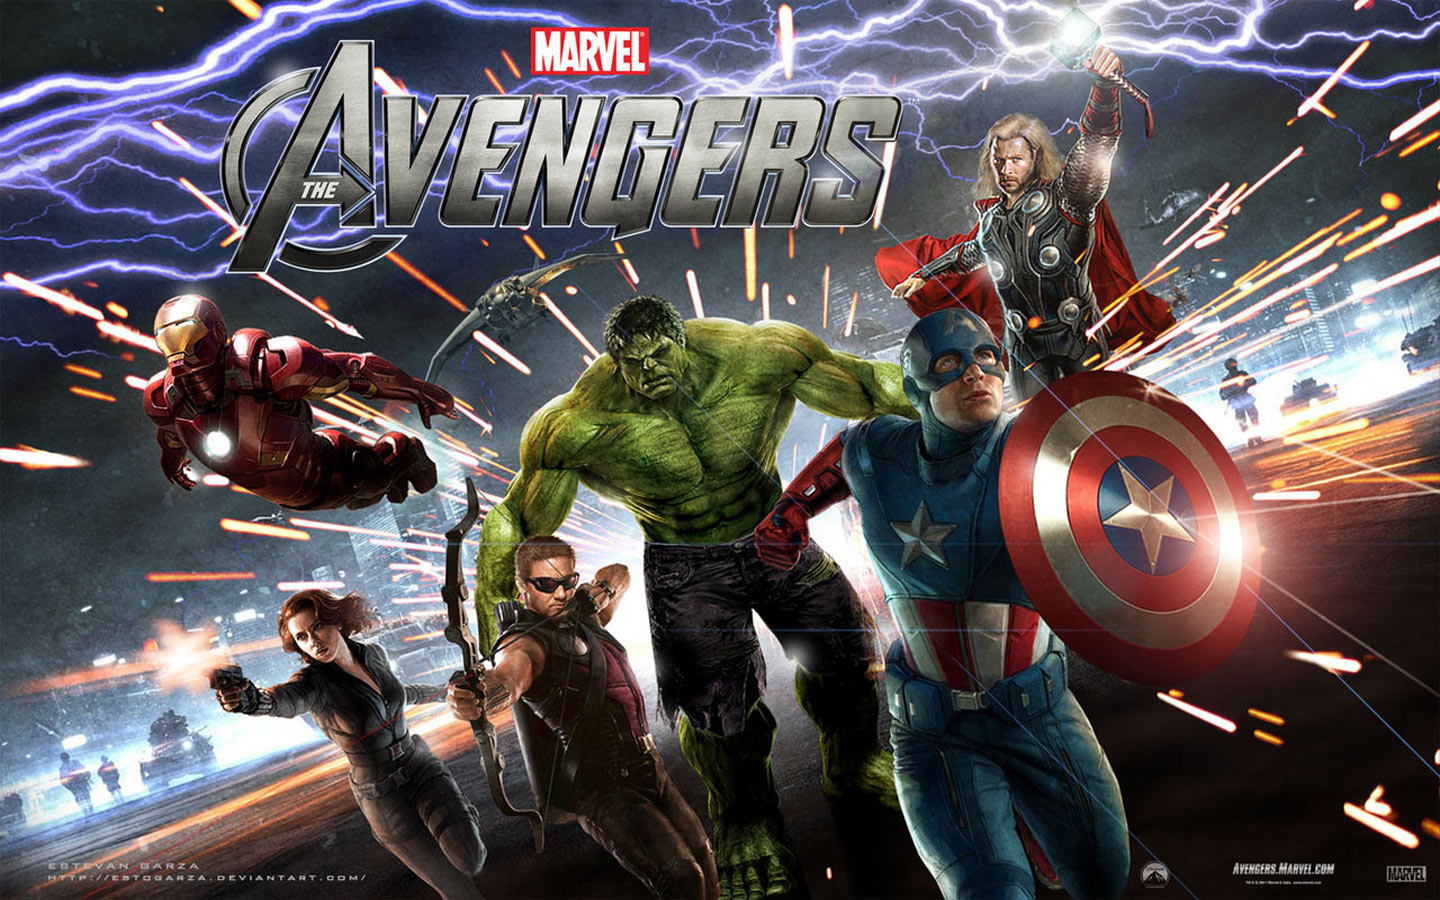 http://4.bp.blogspot.com/-1bkwbBRTfuA/T5tc5f683BI/AAAAAAAAAuY/fx5RCzIG5Os/s1600/The-Avengers-Movie-1440x900-Wallpaper-.jpg